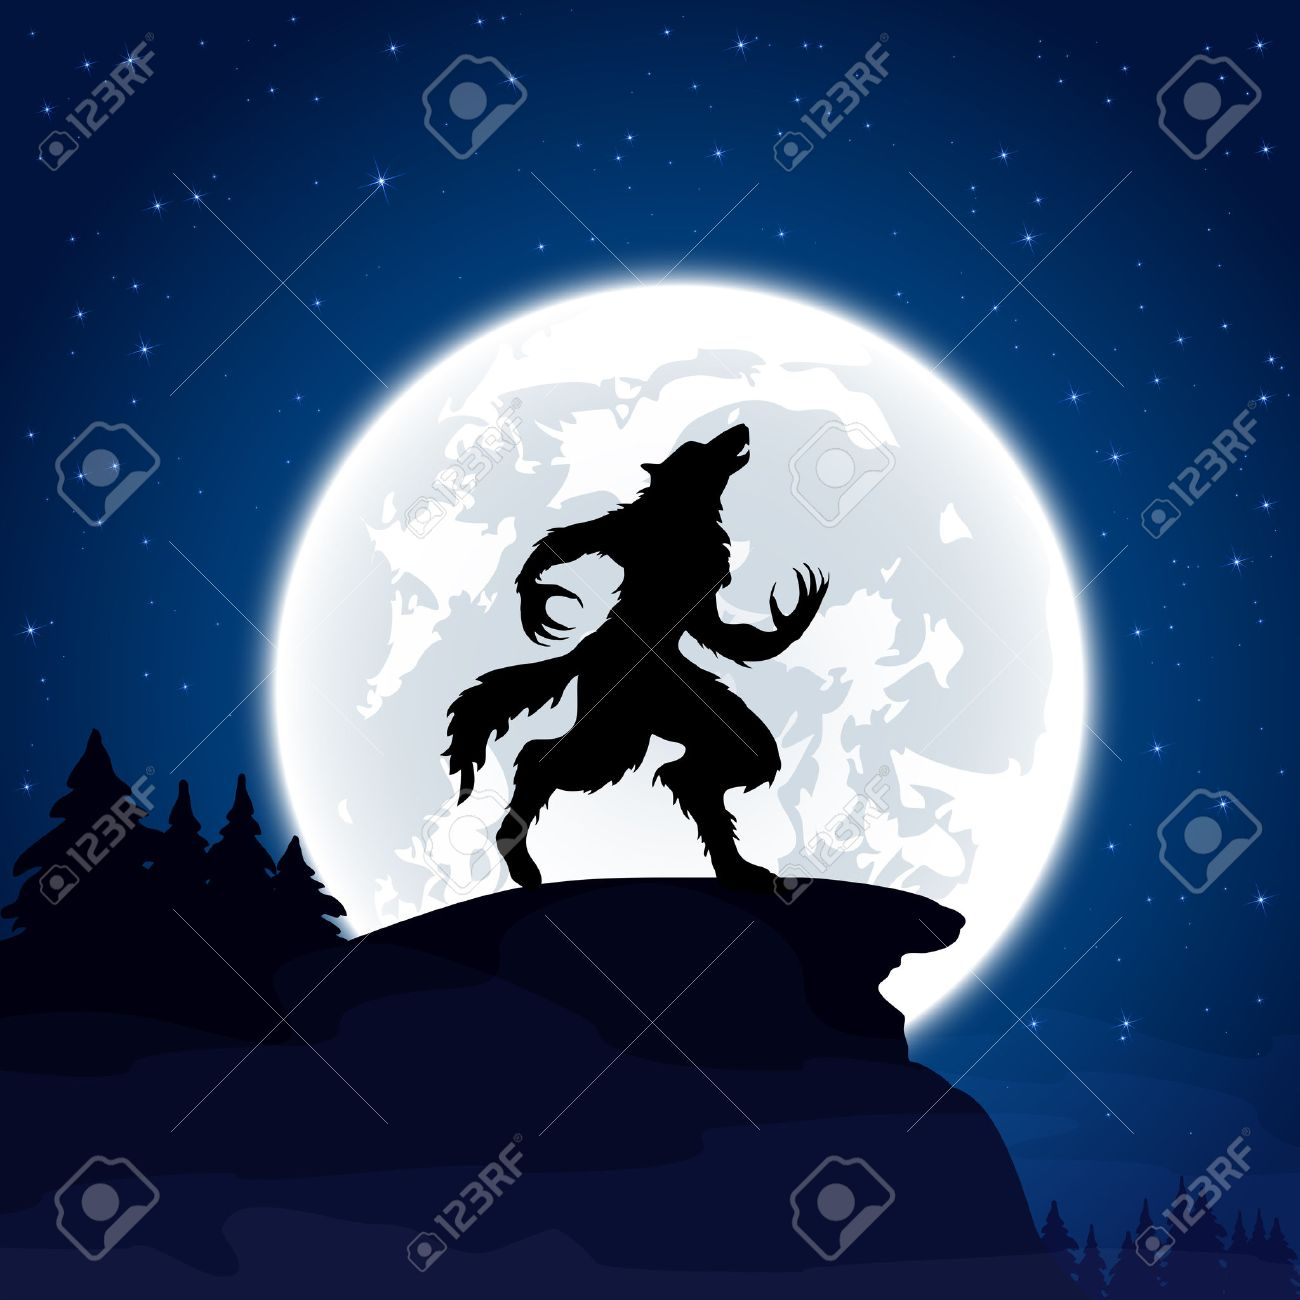 Halloween night background with werewolf and Moon, illustration. - 45299073